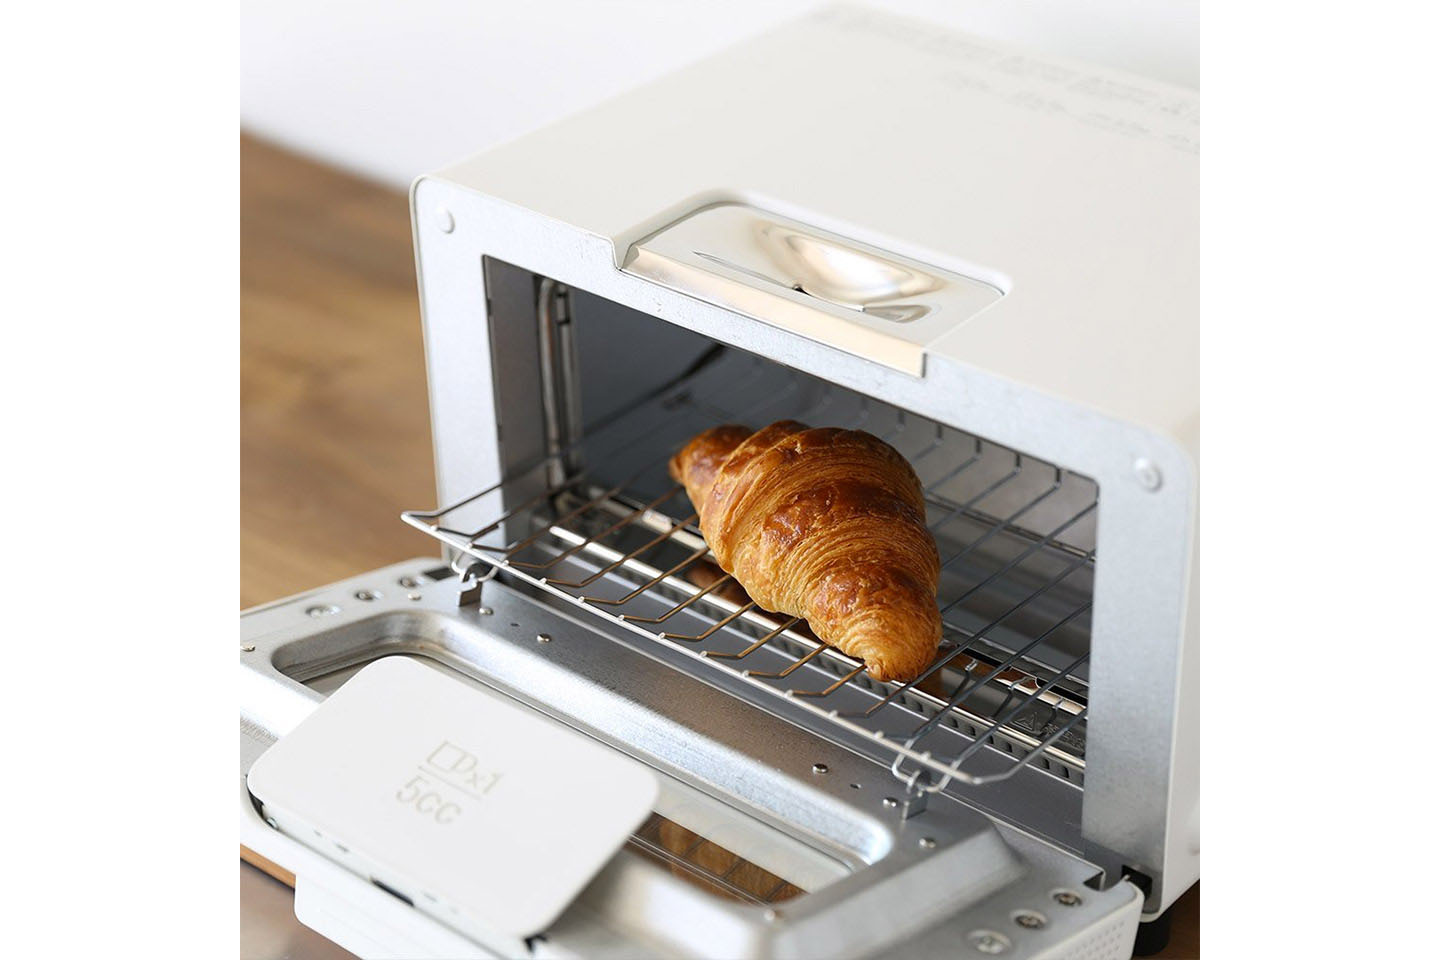 balmuda_steam_toaster_oven_4.jpg